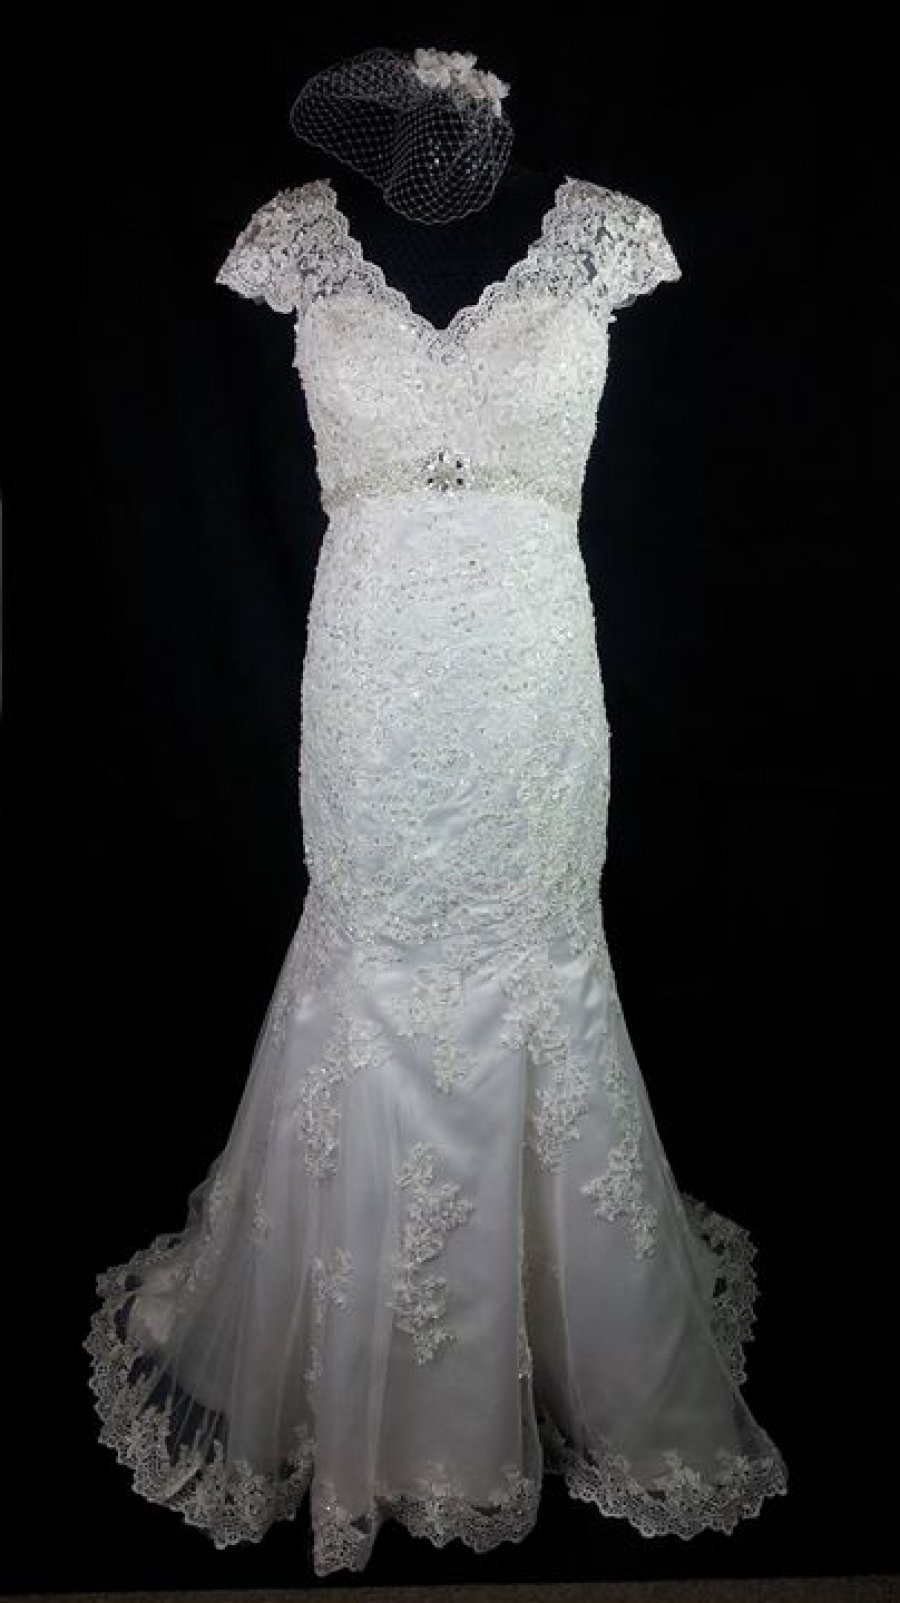 black wedding dress leics